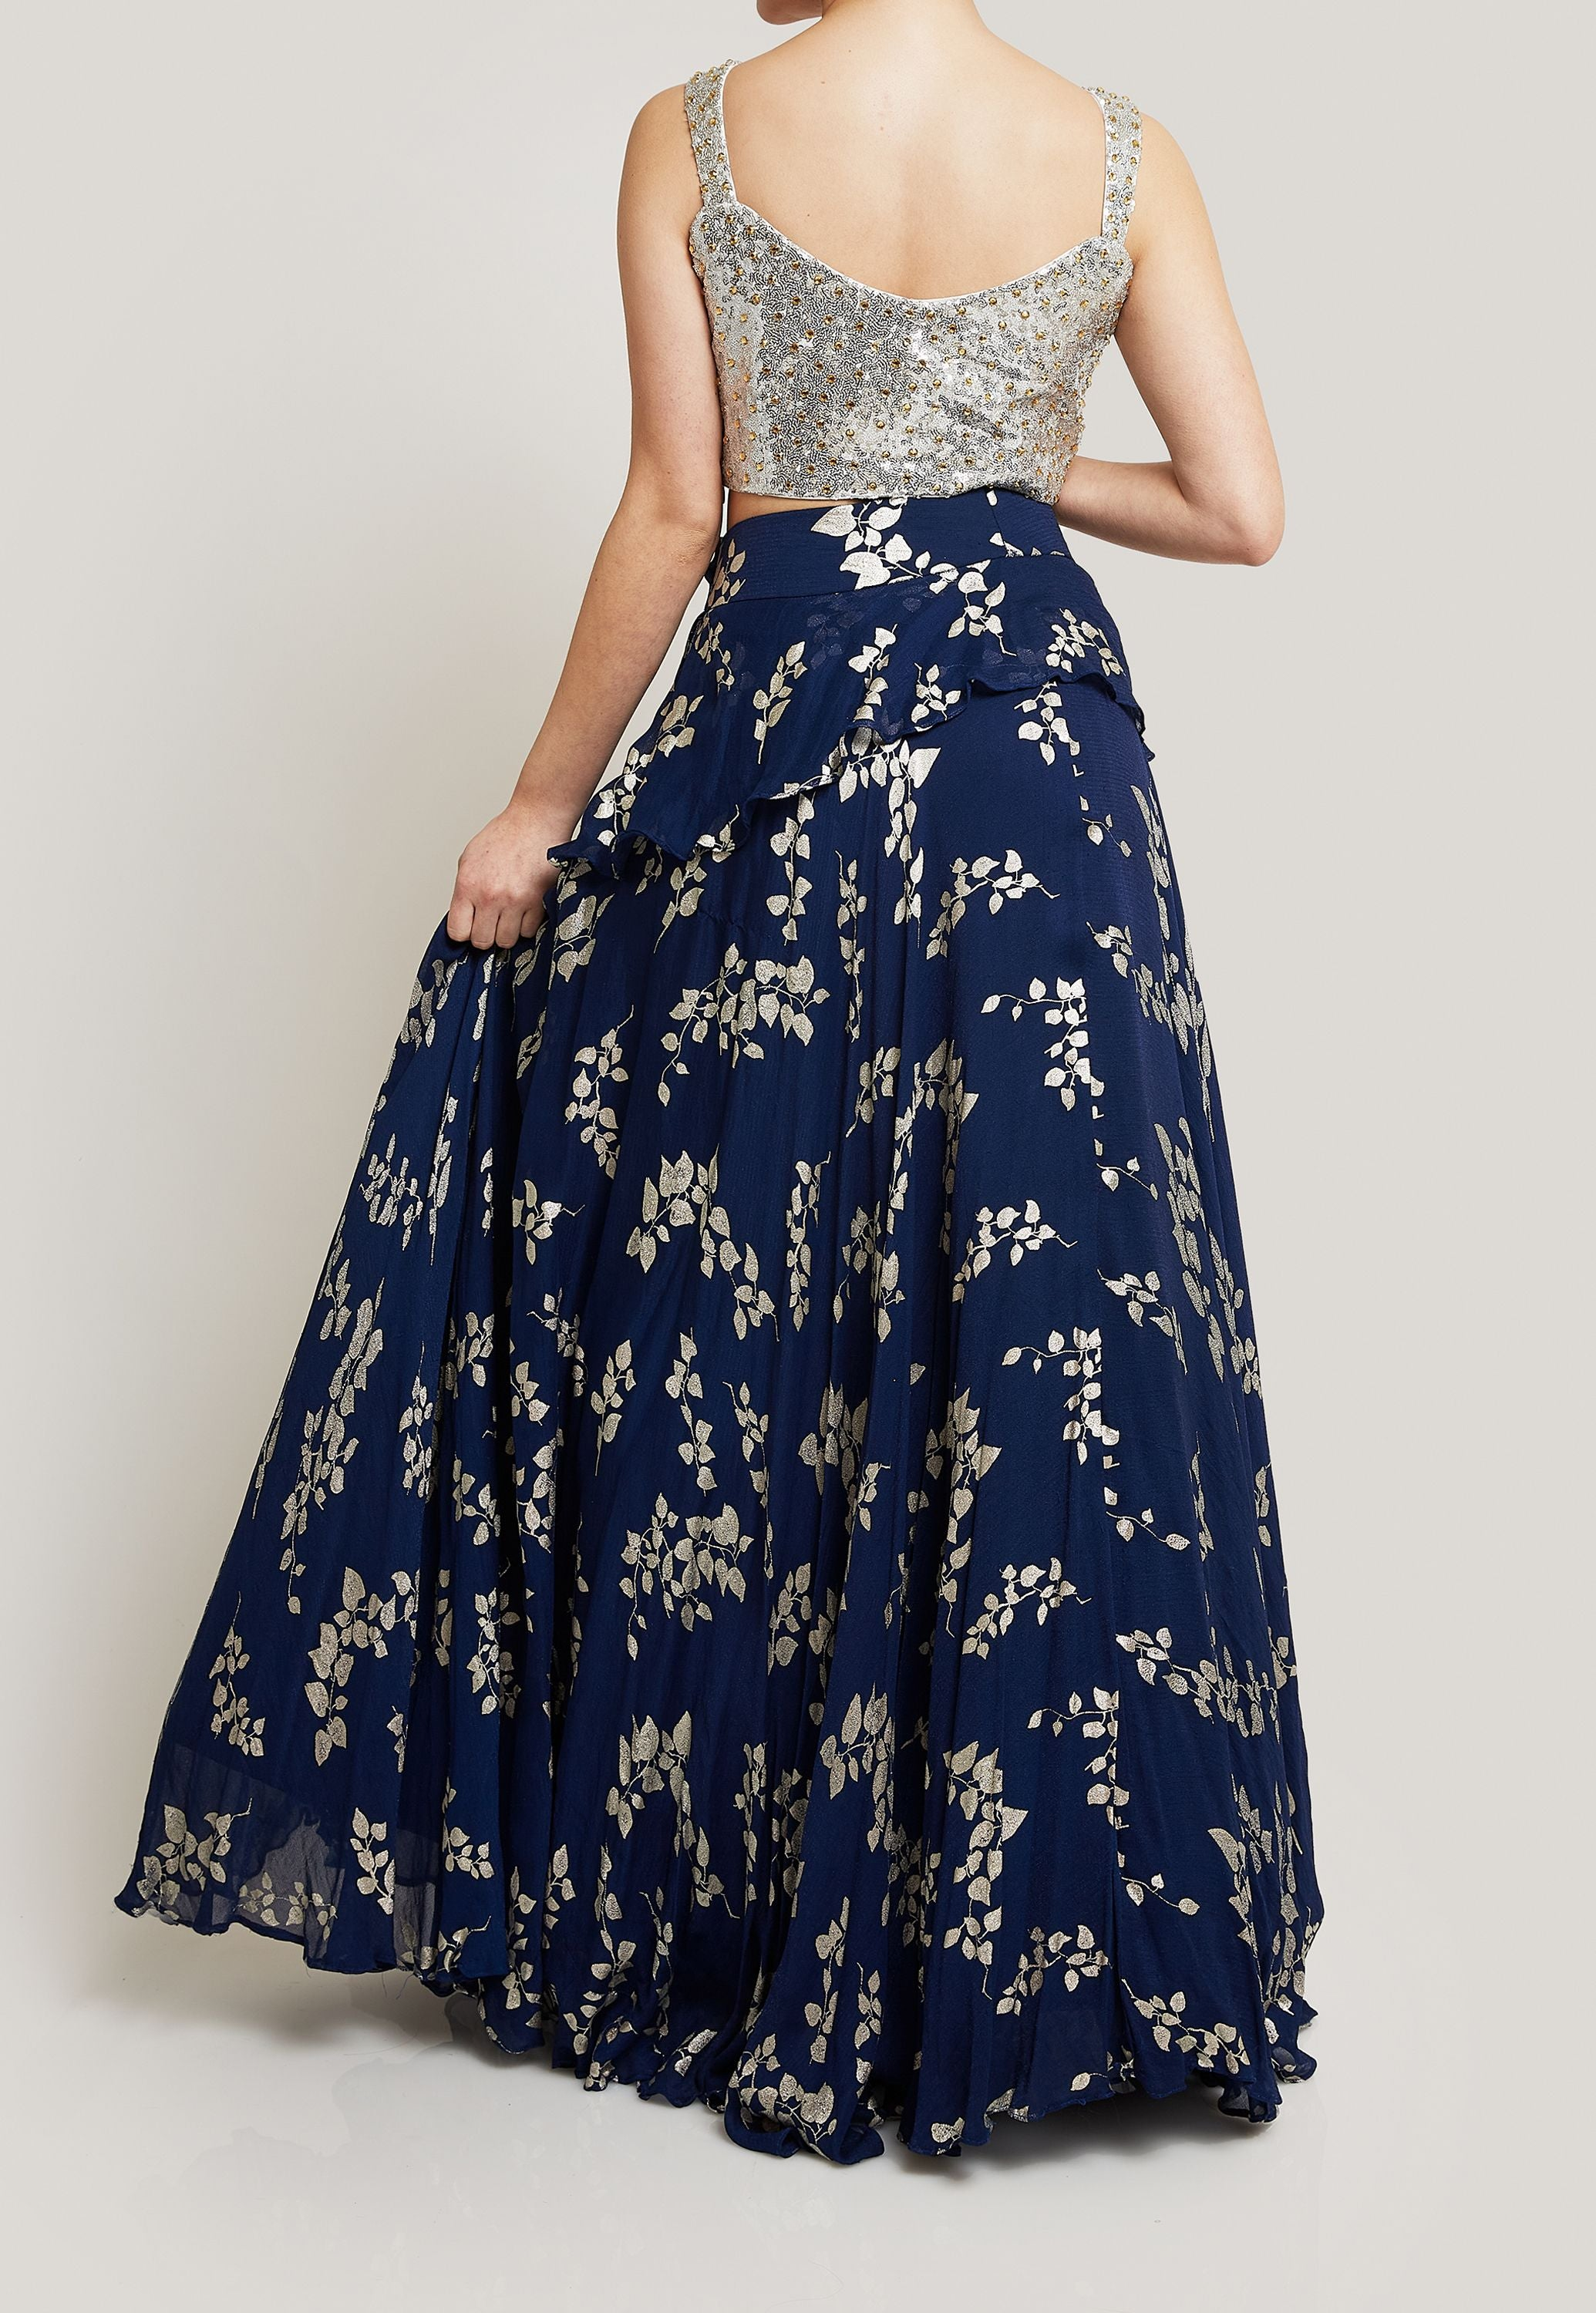 CONTEMPORARY NAVY LEHENGA WITH A SEQUIN SILVER CROP TOP (BLOUSE)